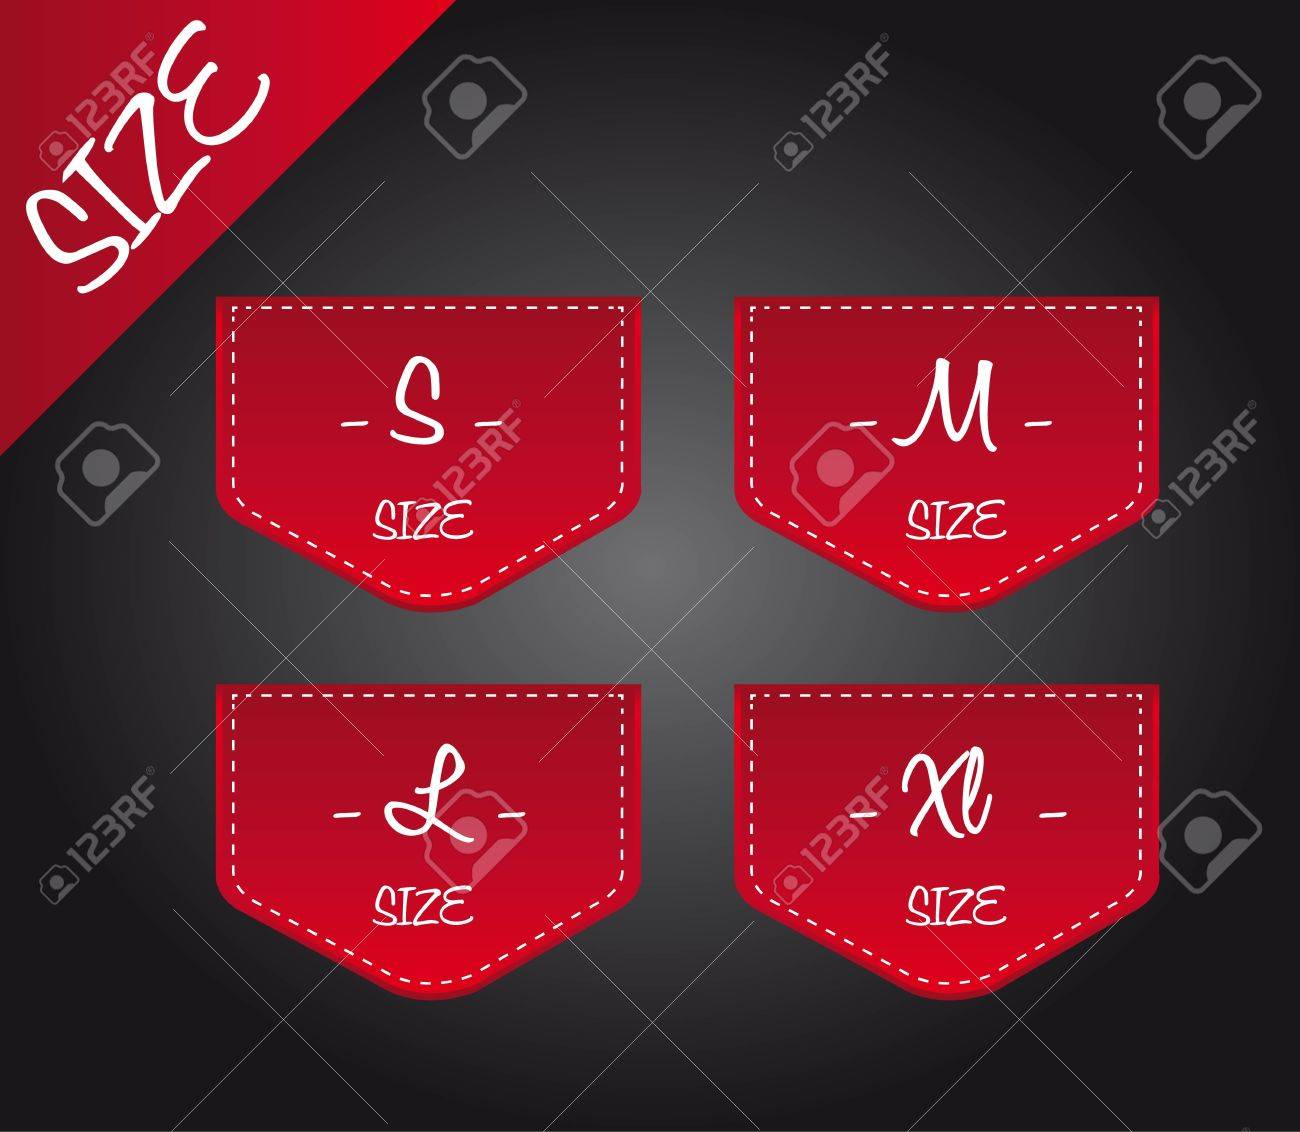 red four size over black background. illustration Stock Vector - 12493531